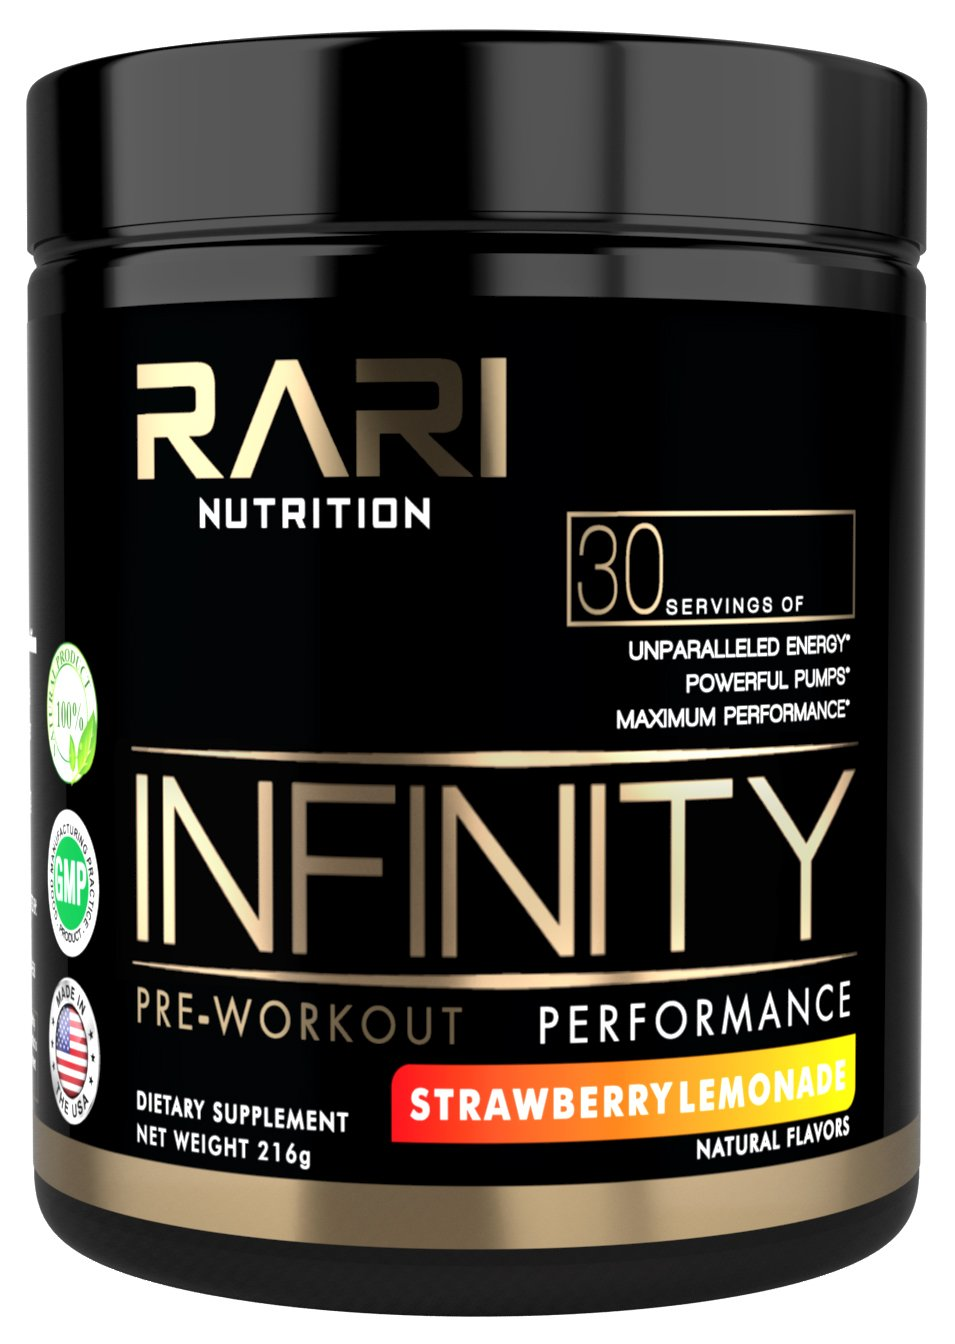 RARI Nutrition - INFINITY - 100% Natural Pre Workout Powder for Energy, Focus, and Performance – Vegan and Keto Friendly - No Creatine – No Artificial Ingredients - 30 Servings (Strawberry Lemonade)